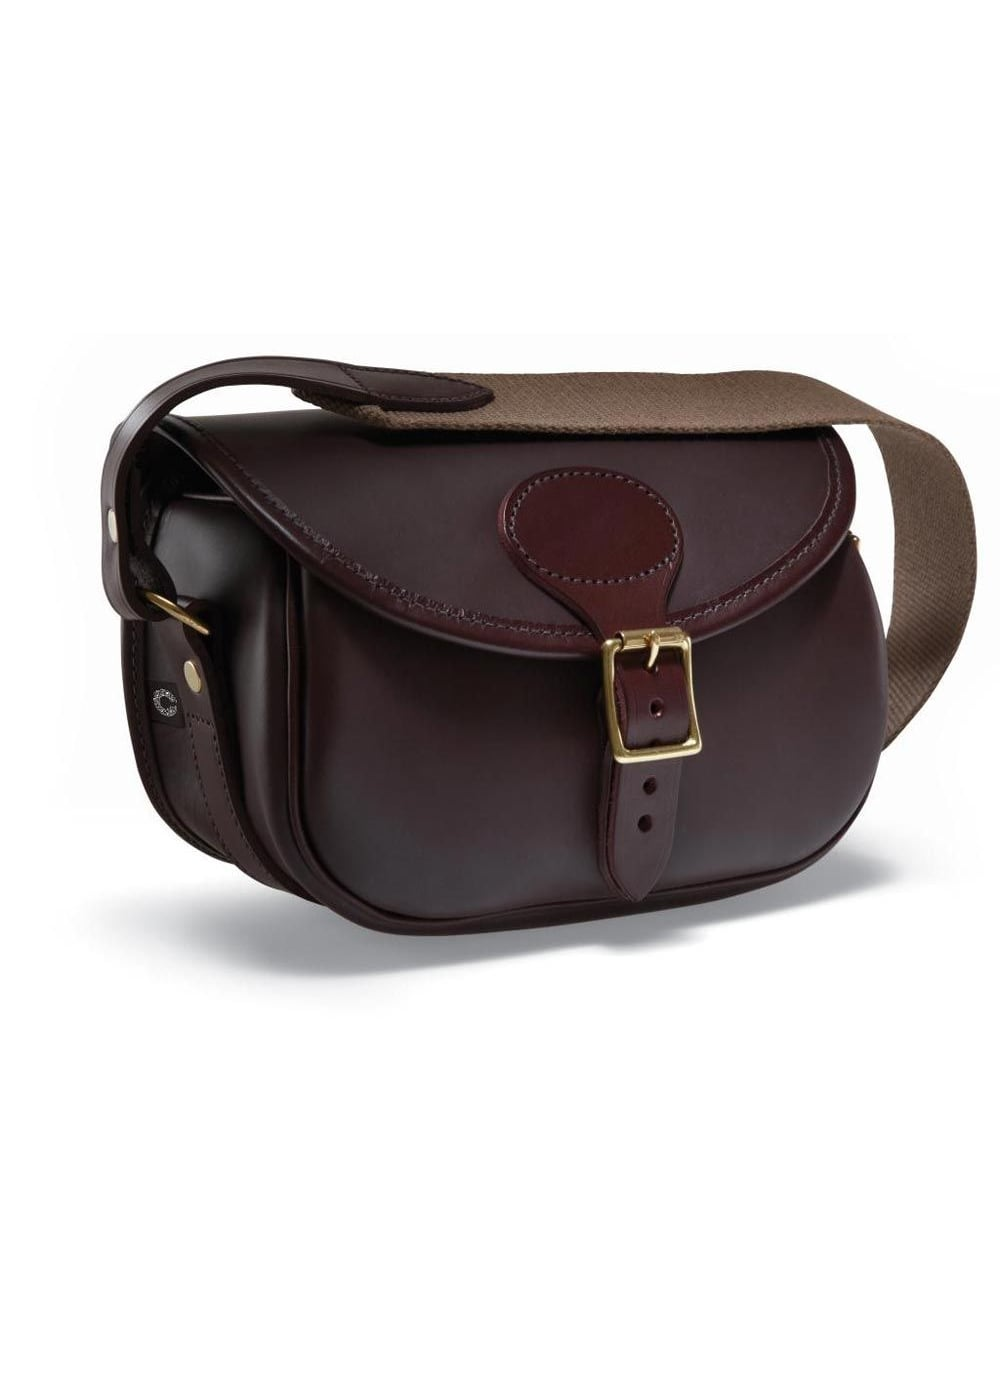 Croots Byland Leather Cartridge Bag - Mens from A Hume UK